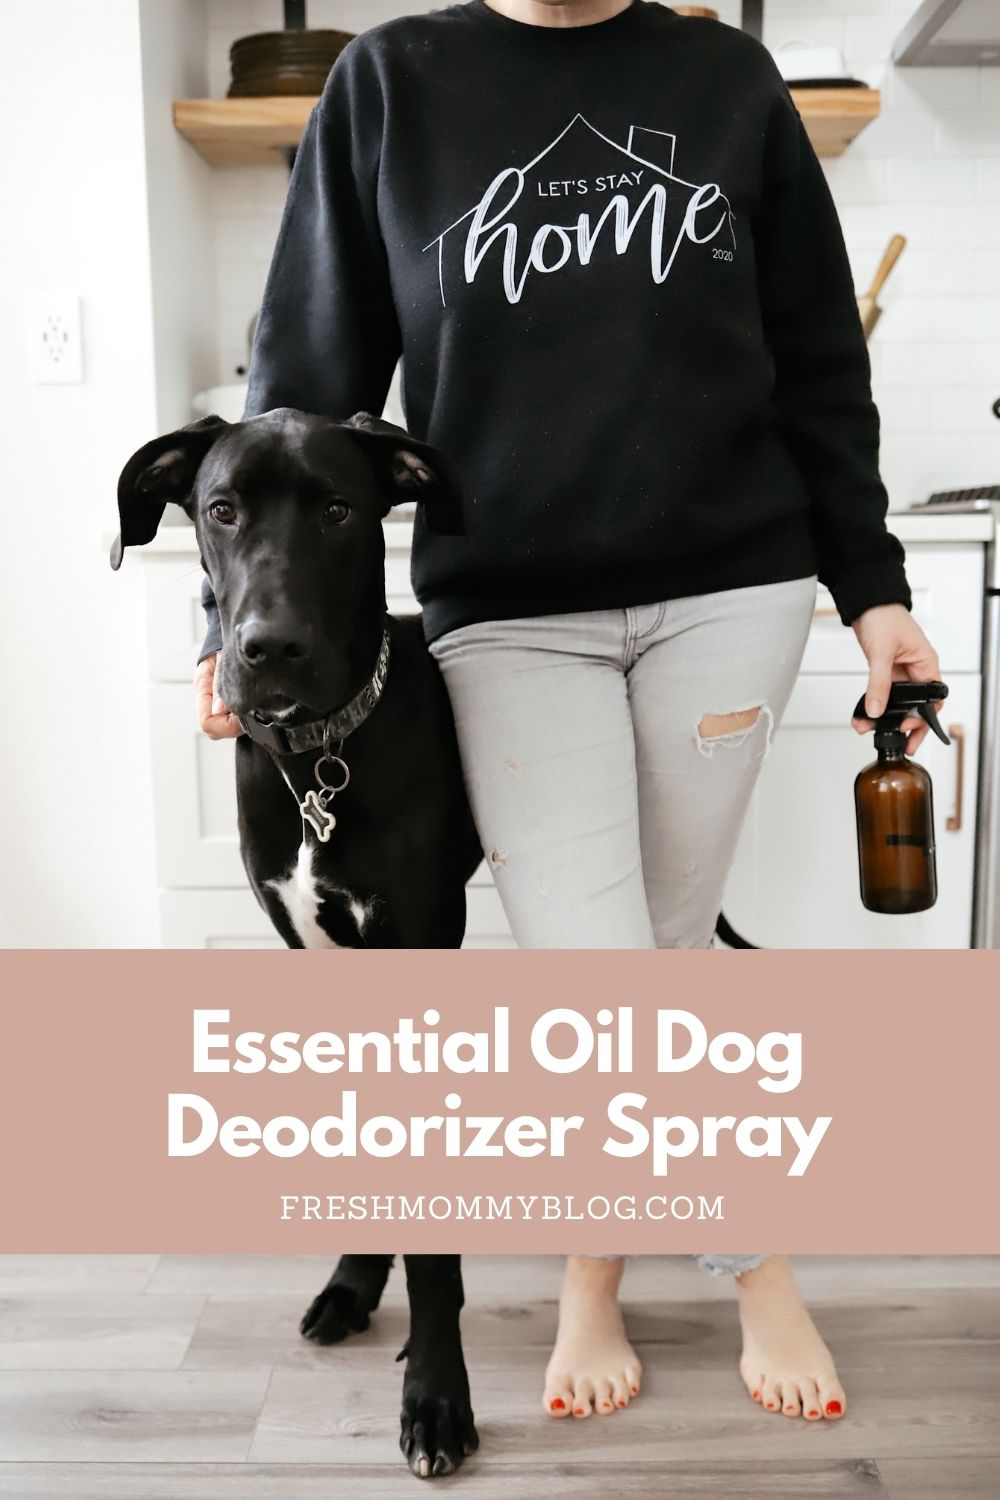 Essential Oils Safe for Dog Deodorizer Spray | Dog Deodorizer Spray by popular Florida lifestyle blog, Fresh Mommy Blog: Pinterest image of a woman wearing a Let's Stay Home sweatshirt and standing next to her black Great Dane dog.